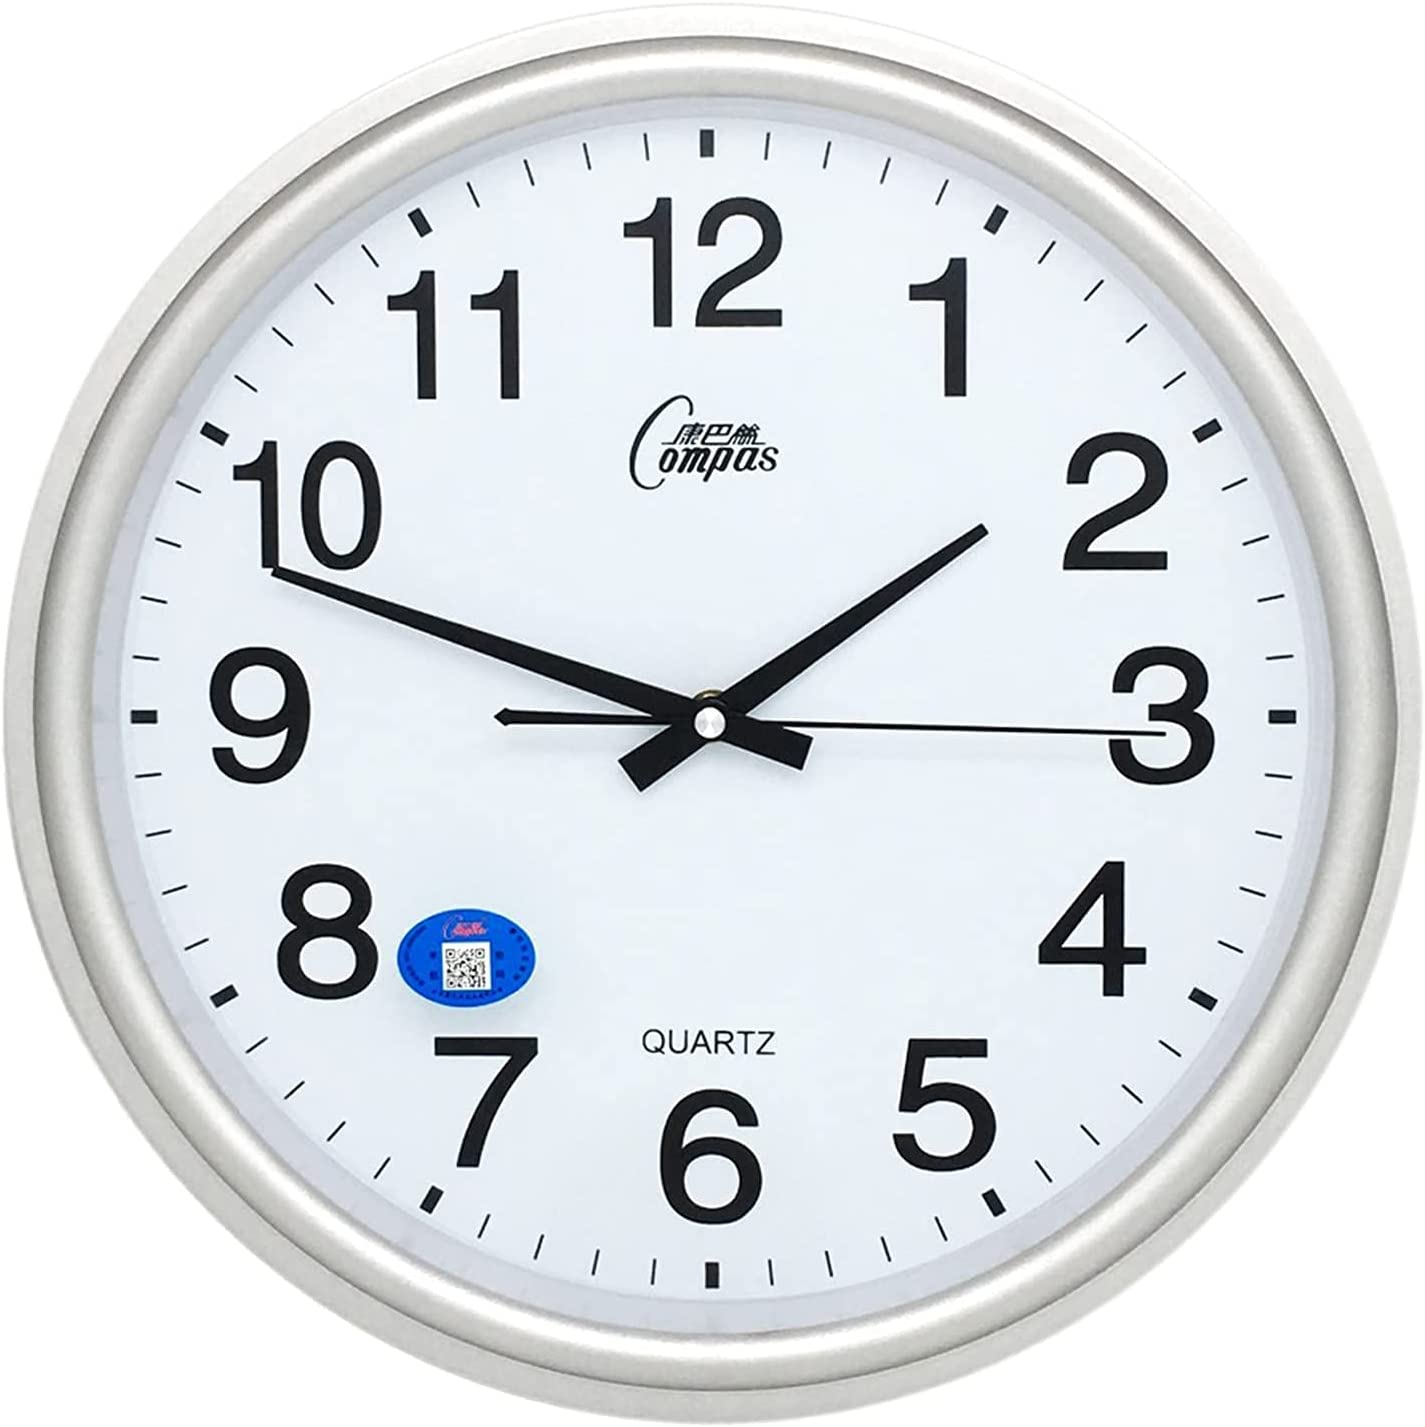 Garden Clock Outdoor Ranking Cheap mail order shopping TOP5 Clocks for Large Waterproof Indoor Patio